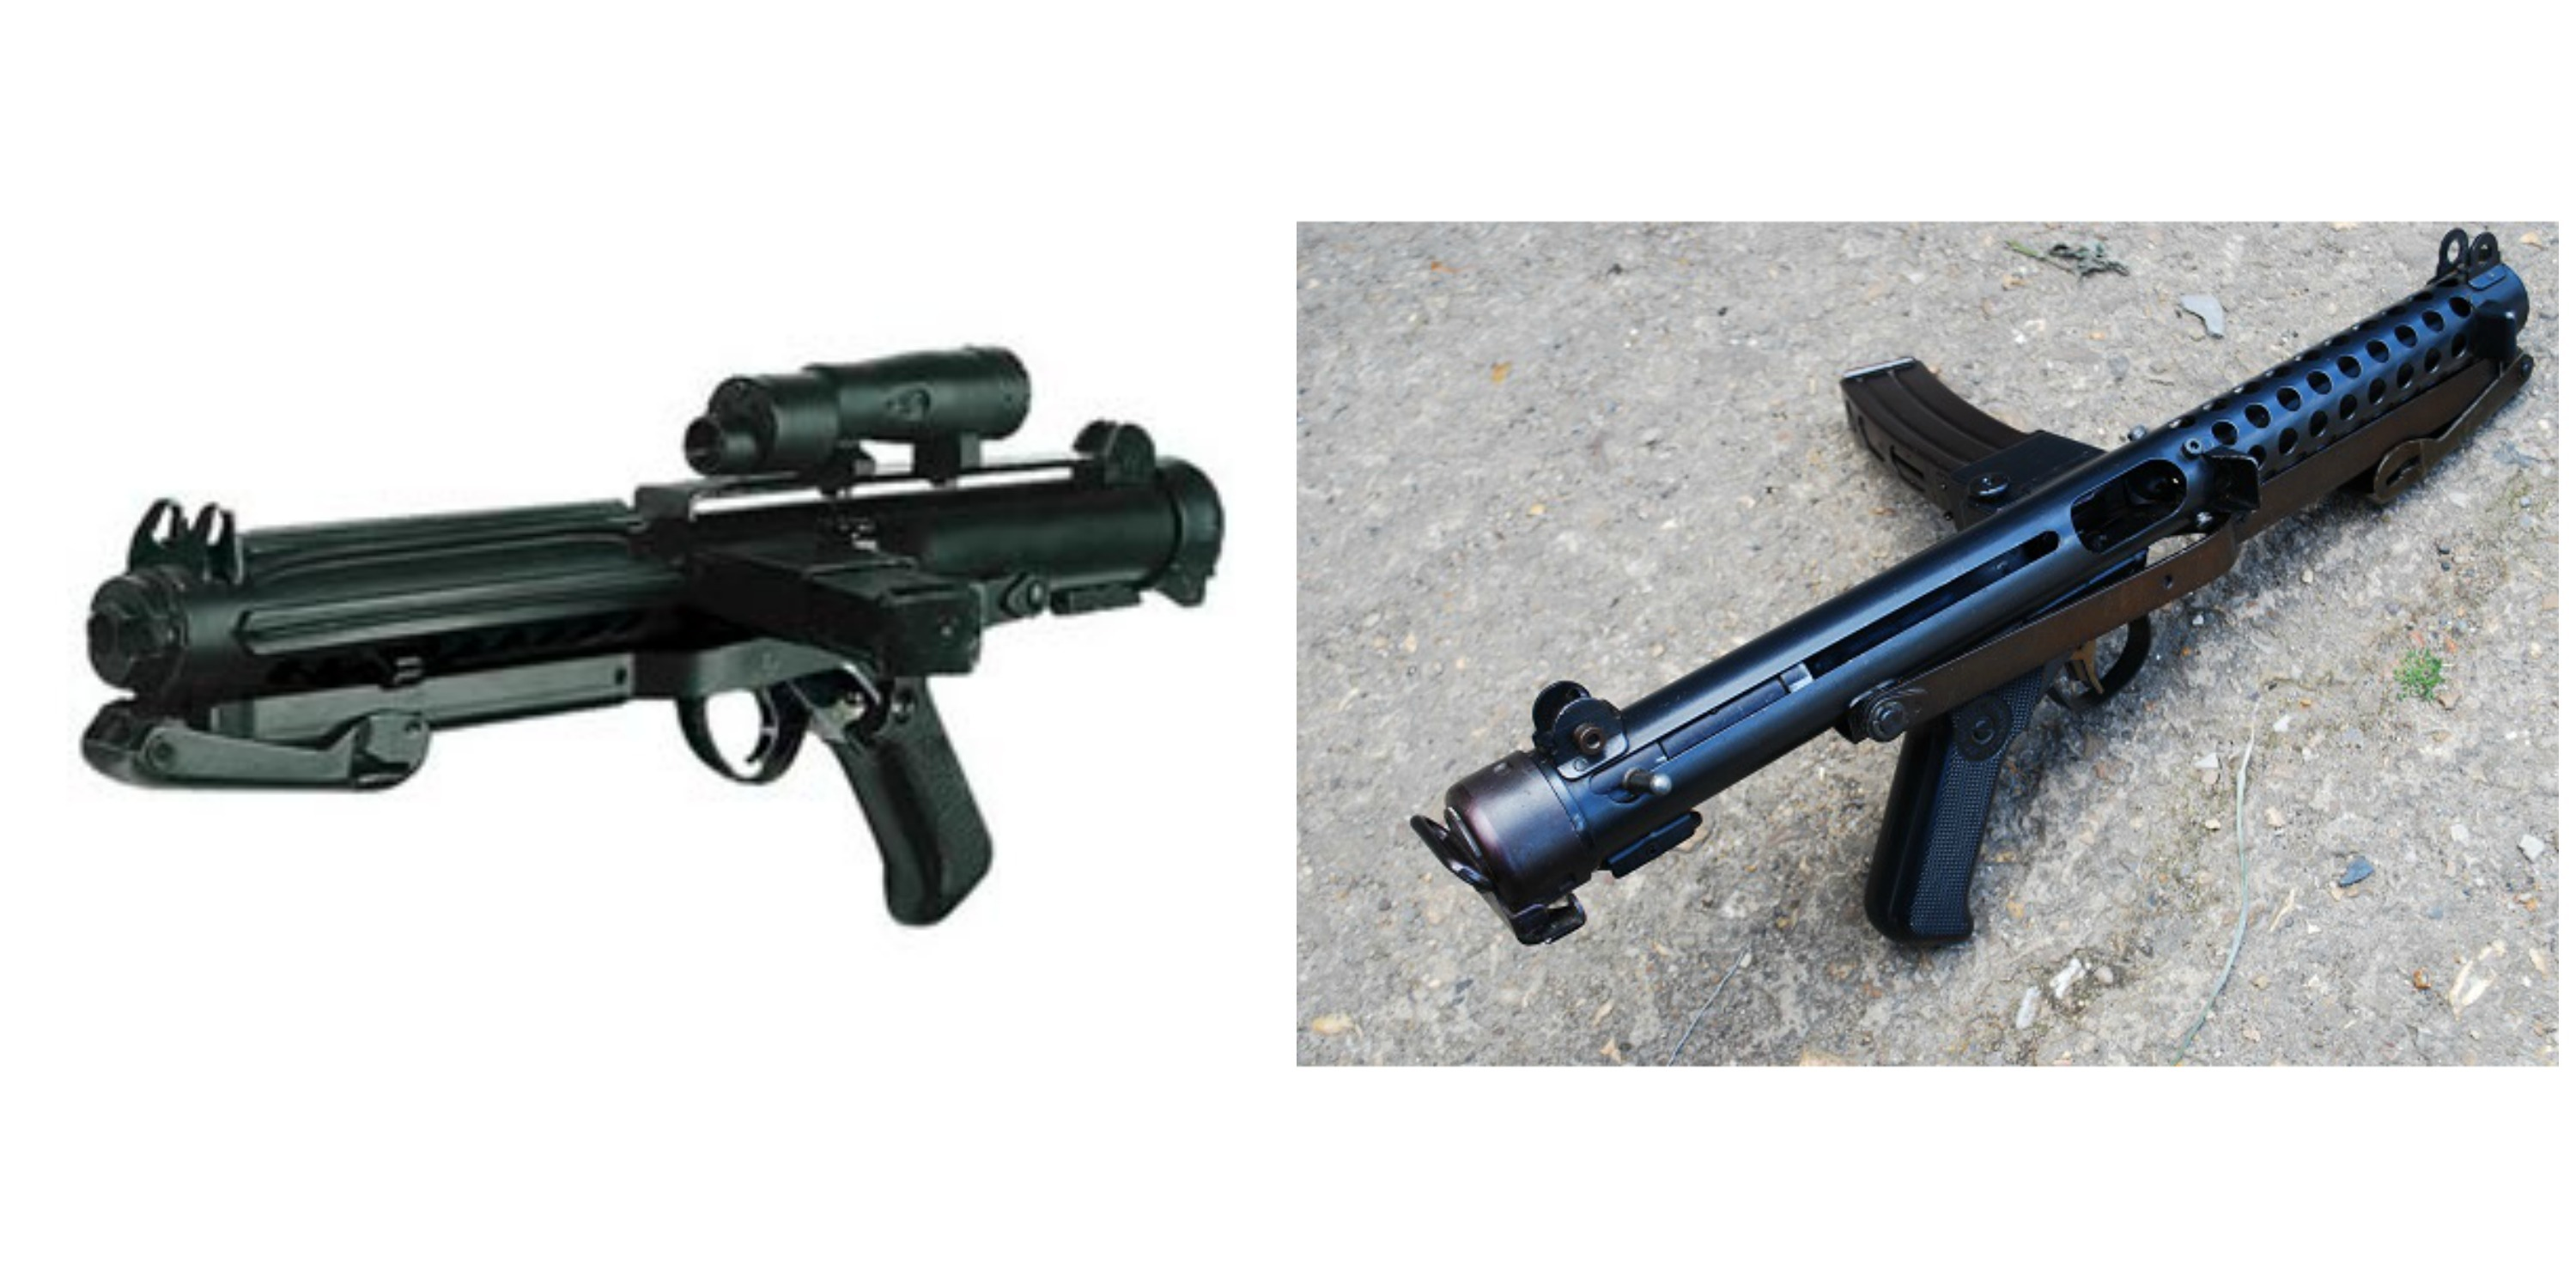 Left: Stormtrooper blaster from 'Star Wars' and 'Rogue One'. Right: Sterling British Submachine Gun from 1944.